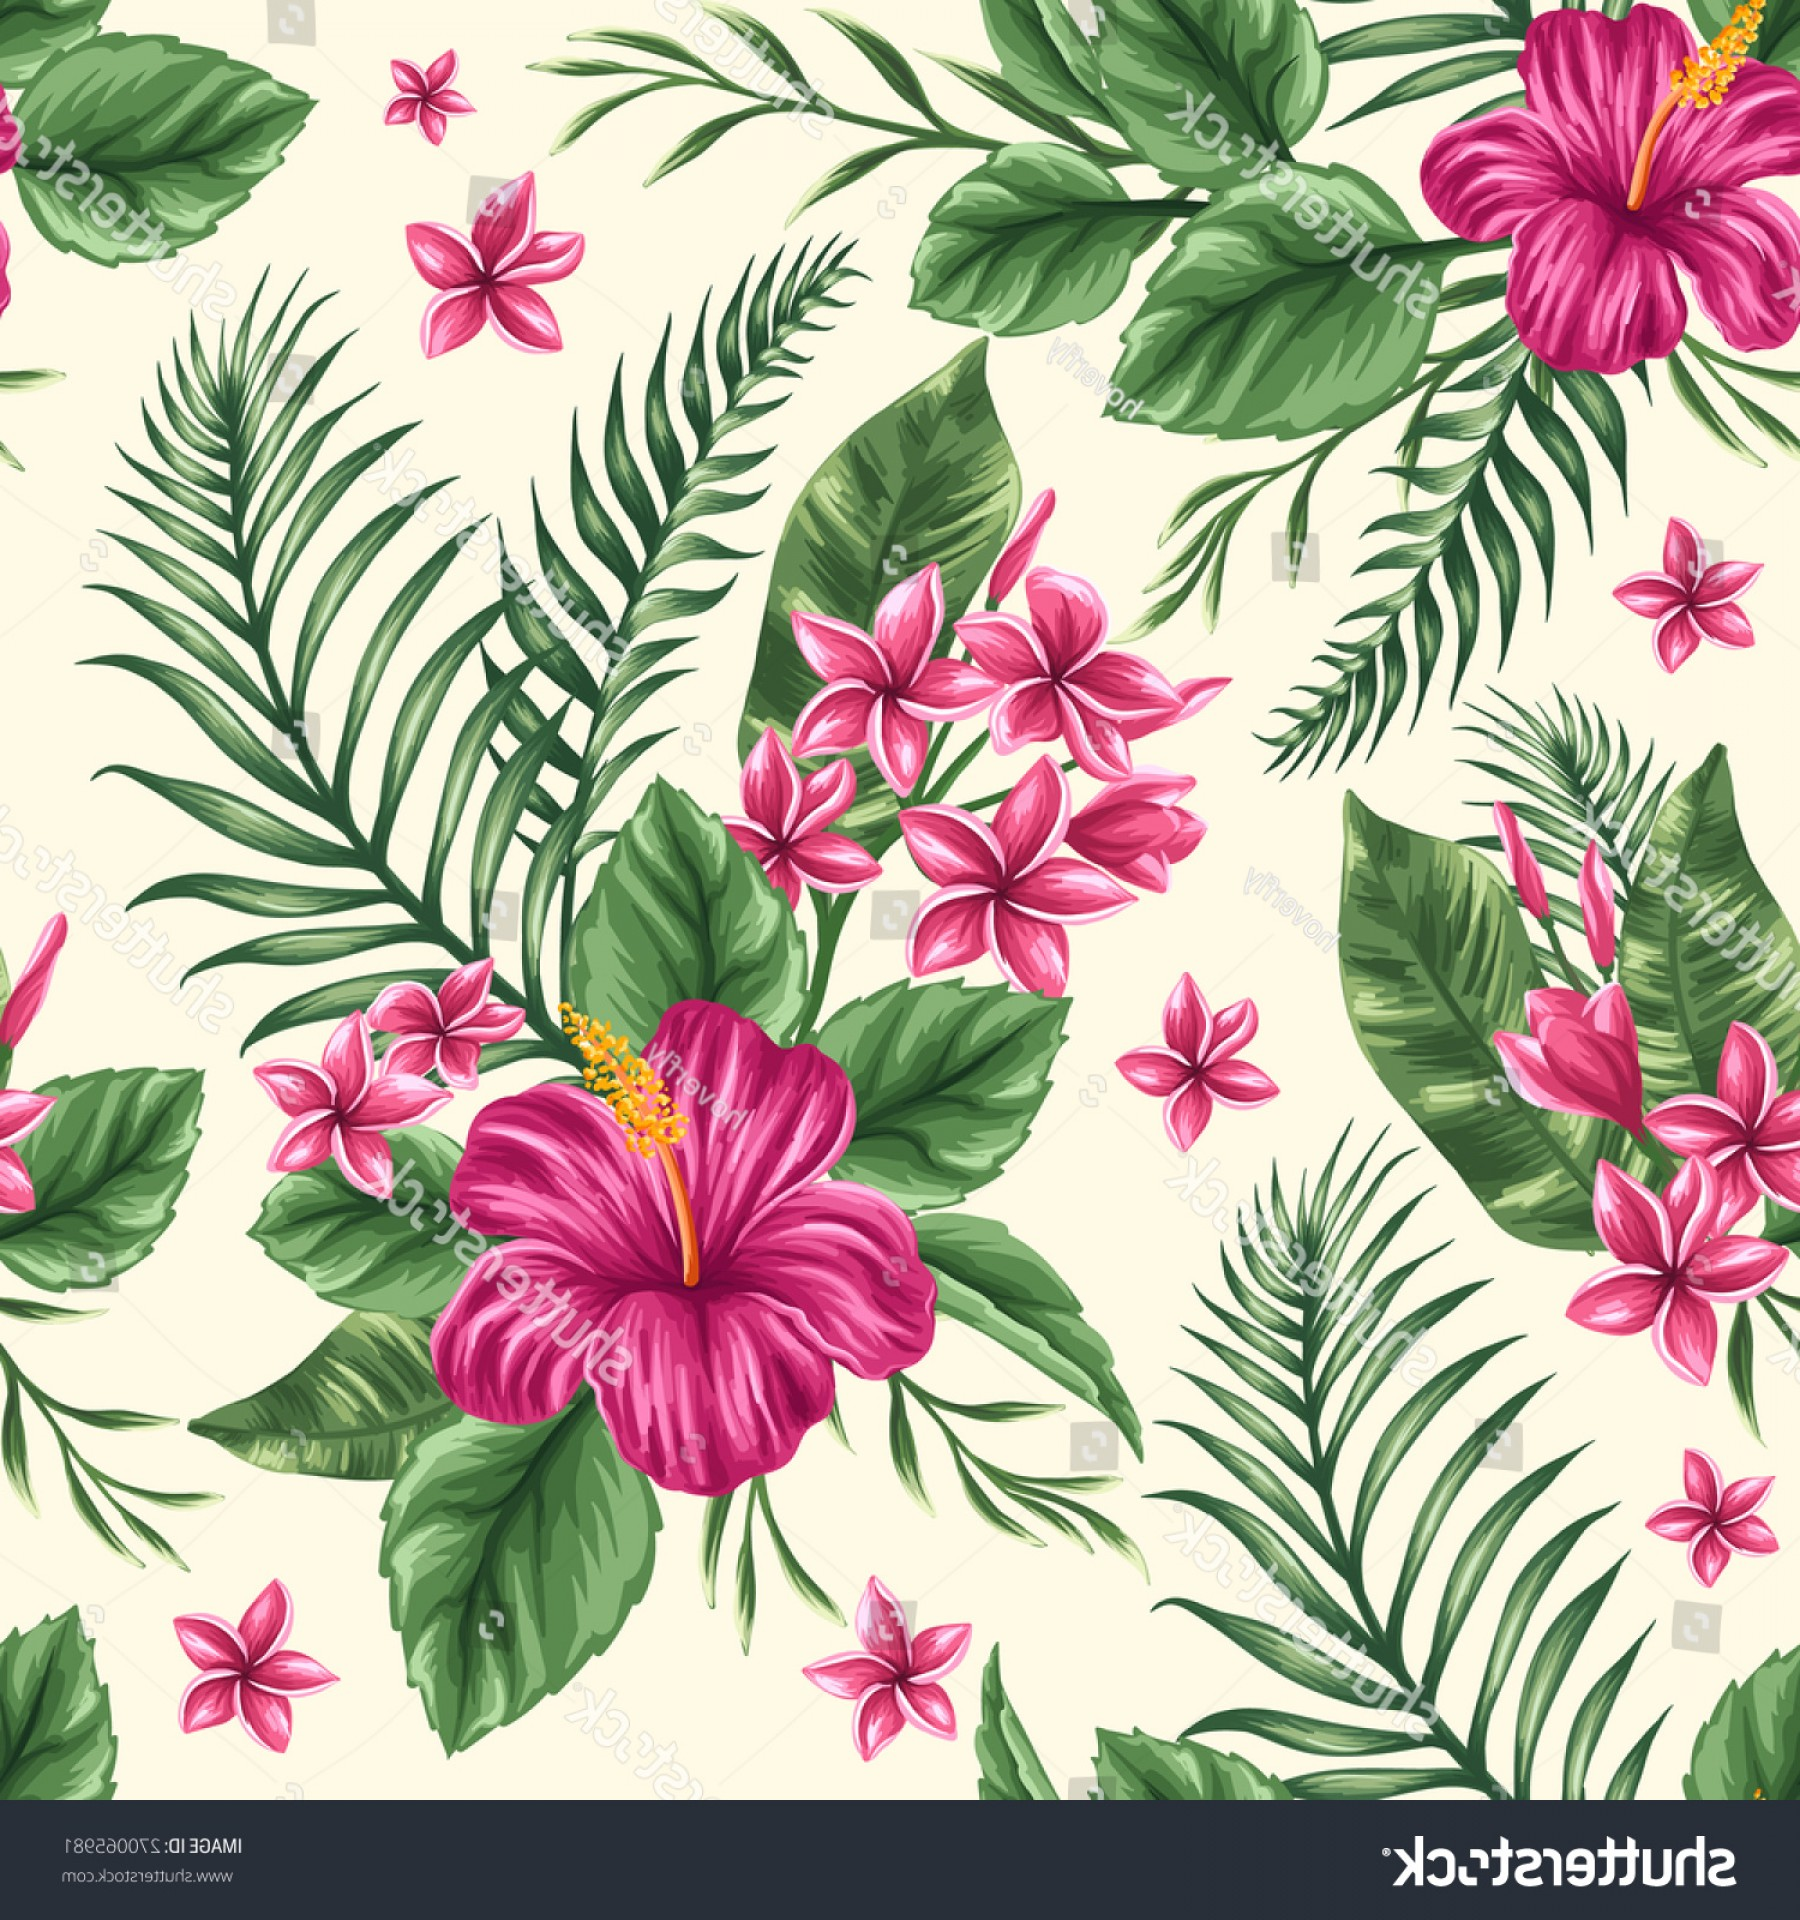 Hawaiian Flower Seamless Vector Pattern: Glamorous Tropical Floral Seamless Pattern Plumeria Hibiscus